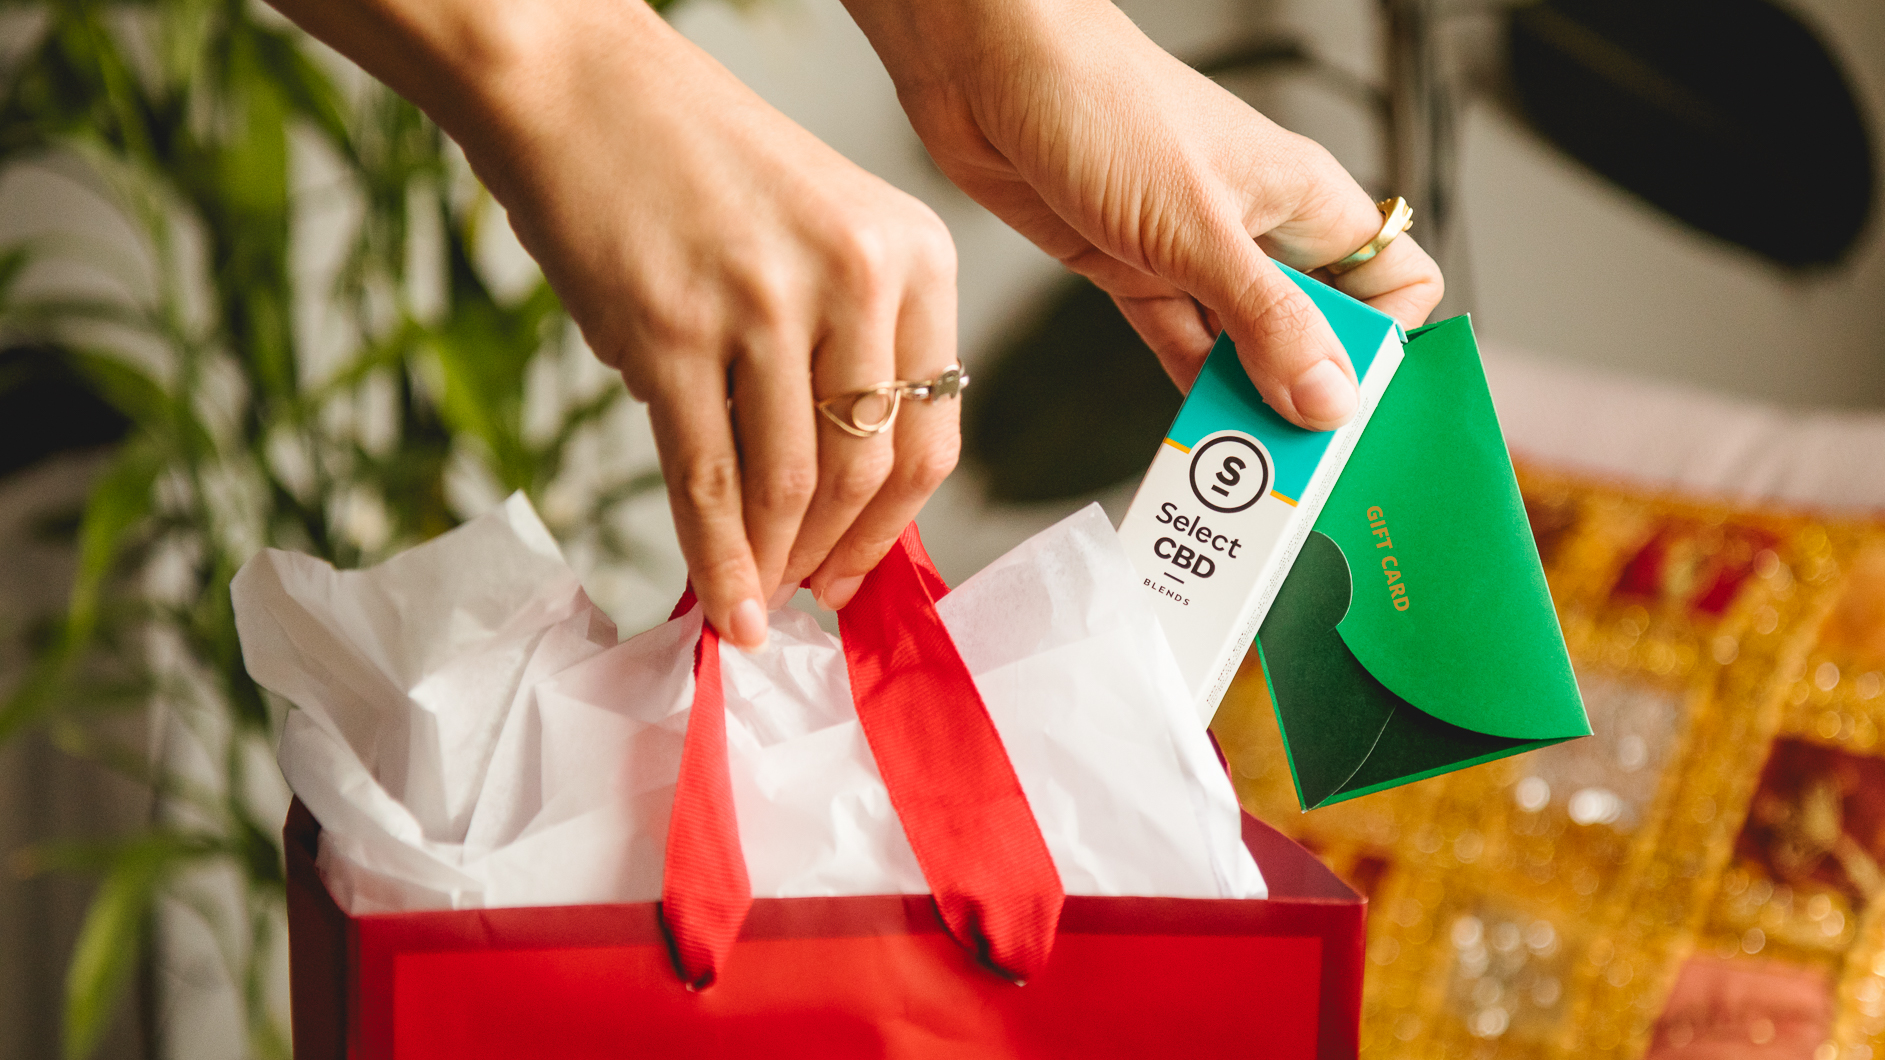 Image of someone placing a gift card and a Focus CBD Peppermint vaporizer into a gift bag.